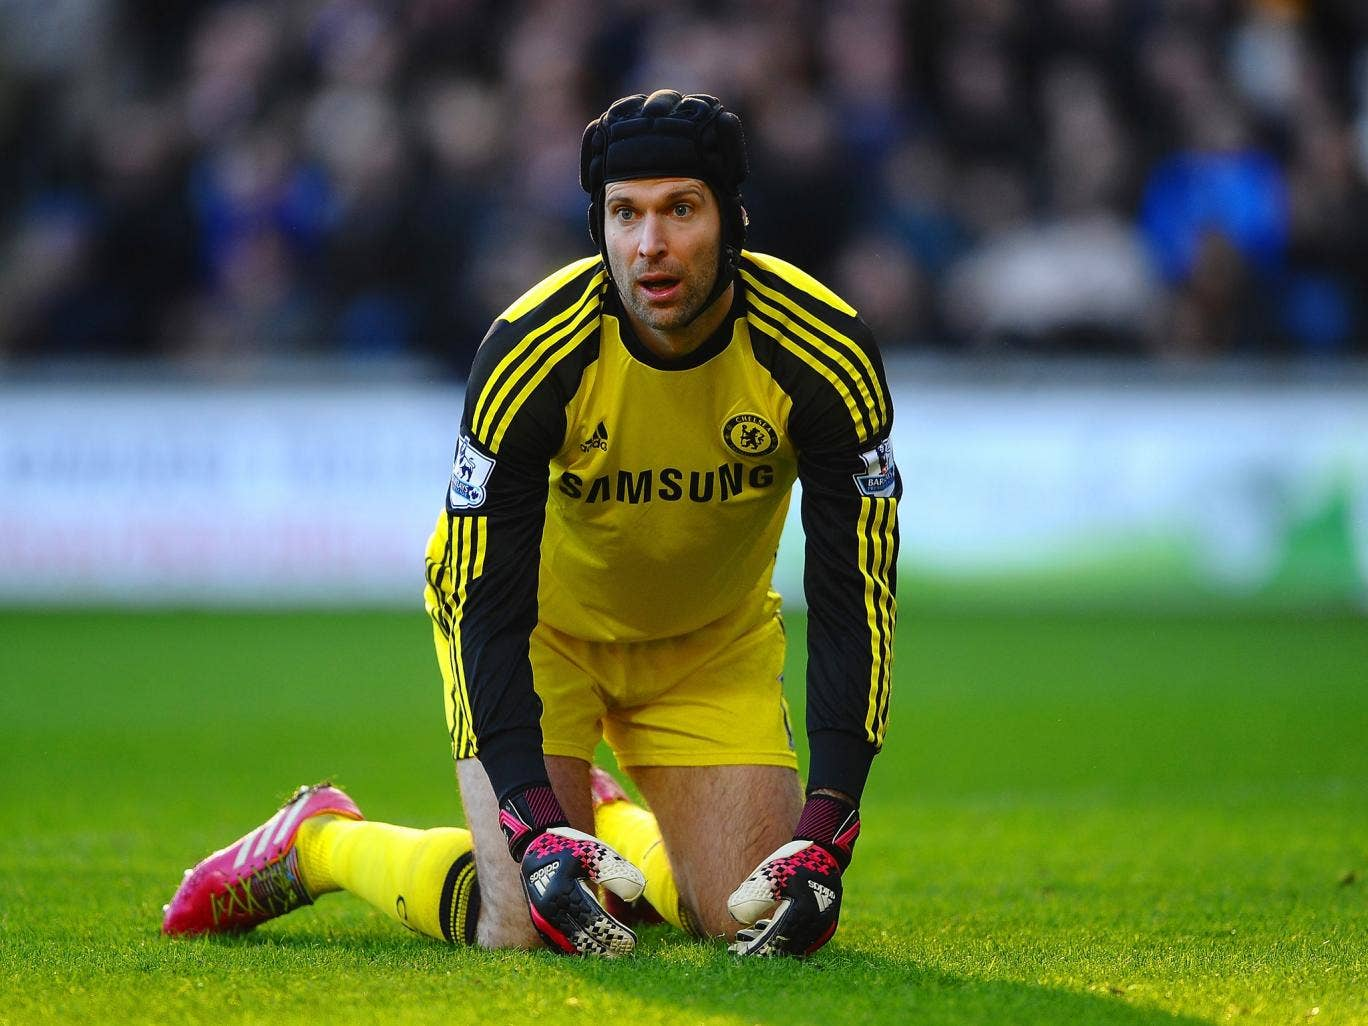 Petr Cech surpassed Peter Bonetti's Chelsea record for the most clean sheets with his 209th for the club